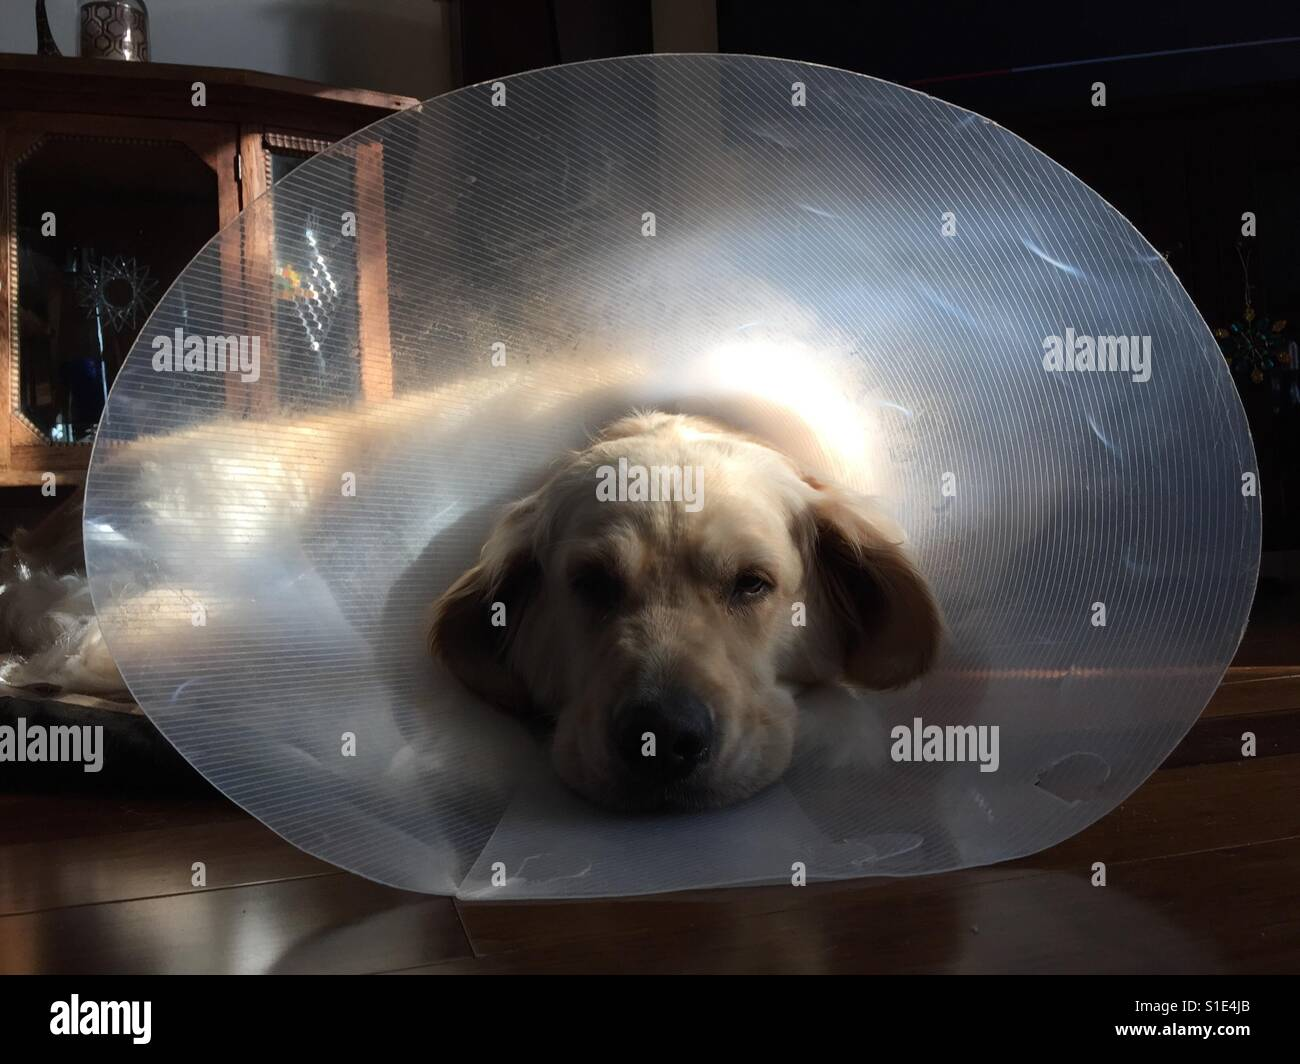 dog in cone of shame stock photo 310712259 alamy